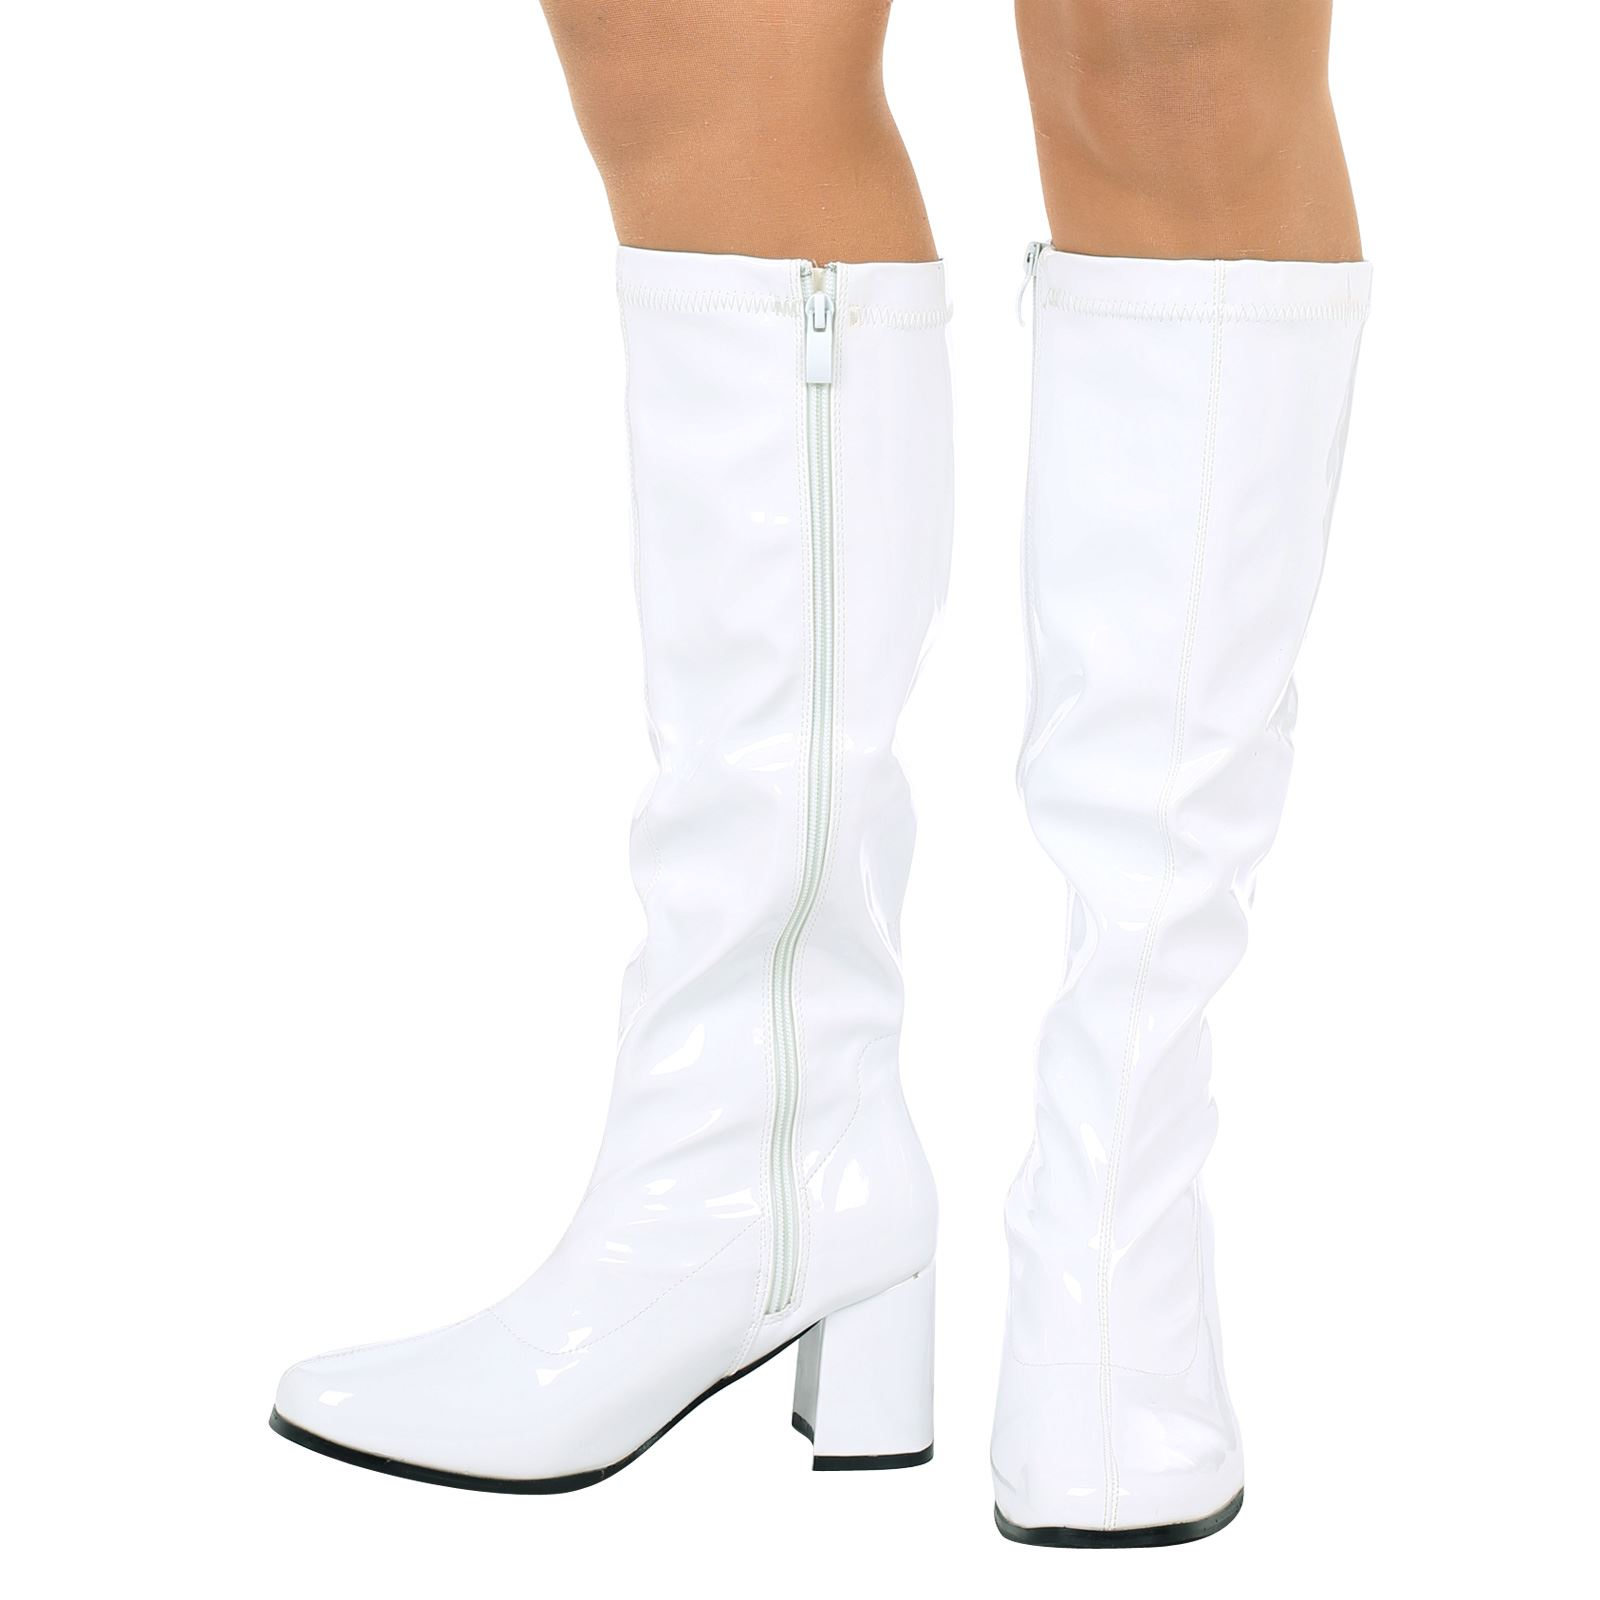 Big Discount Knee High Boots  Fancy Dress White Patent Party Boots